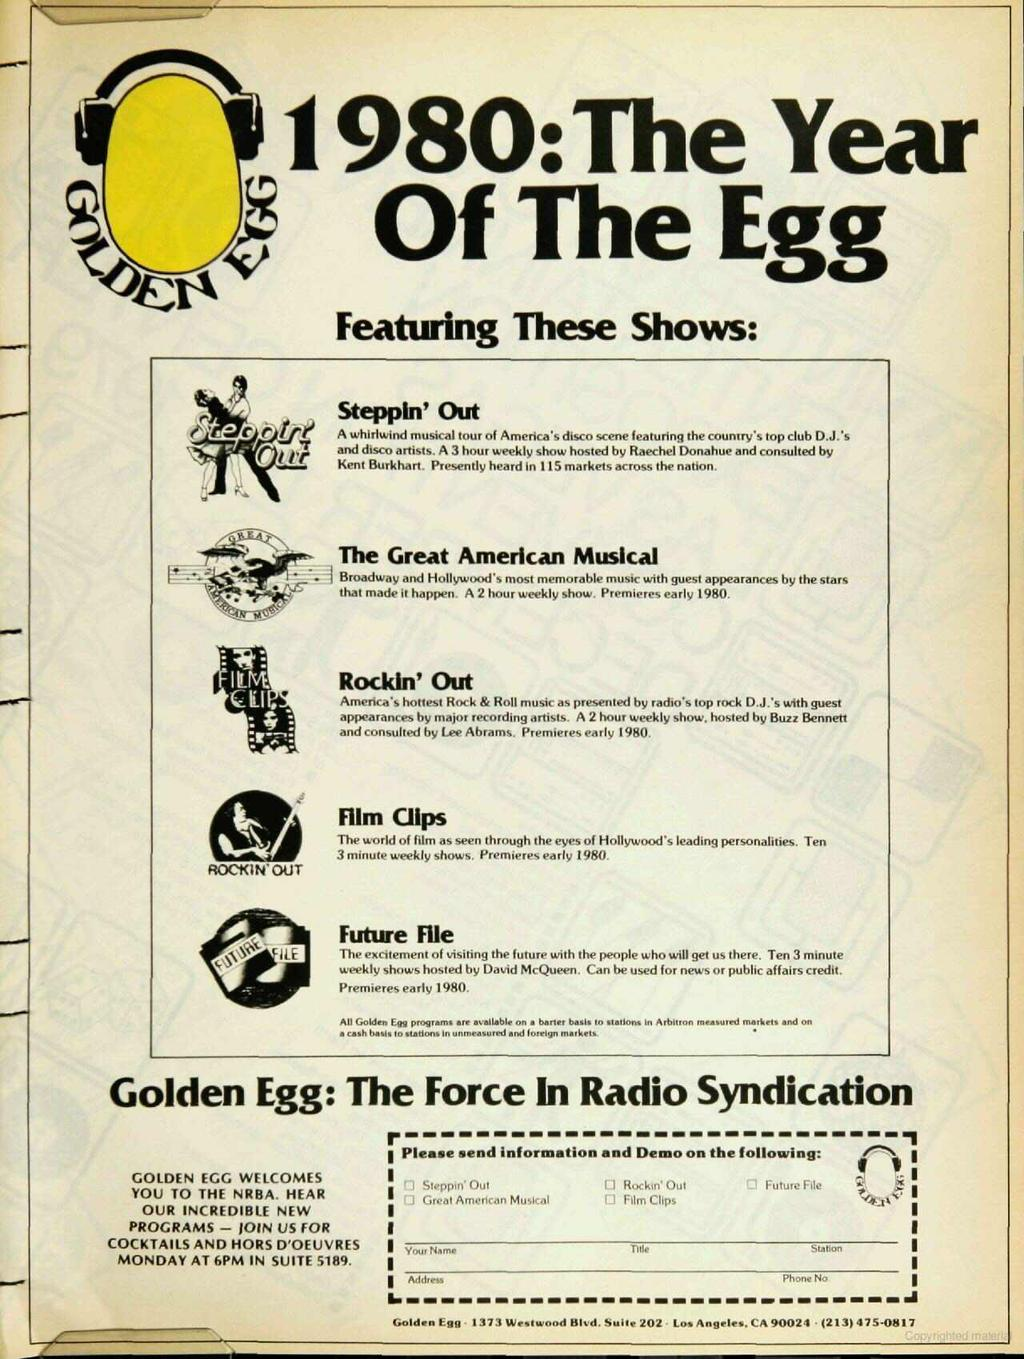 980: The Year Of The Egg Featuring These Shows: Steppan' Out # A whirlwind musical tour of America's disco scene featuring the country's top club D.J.'s and disco artists.